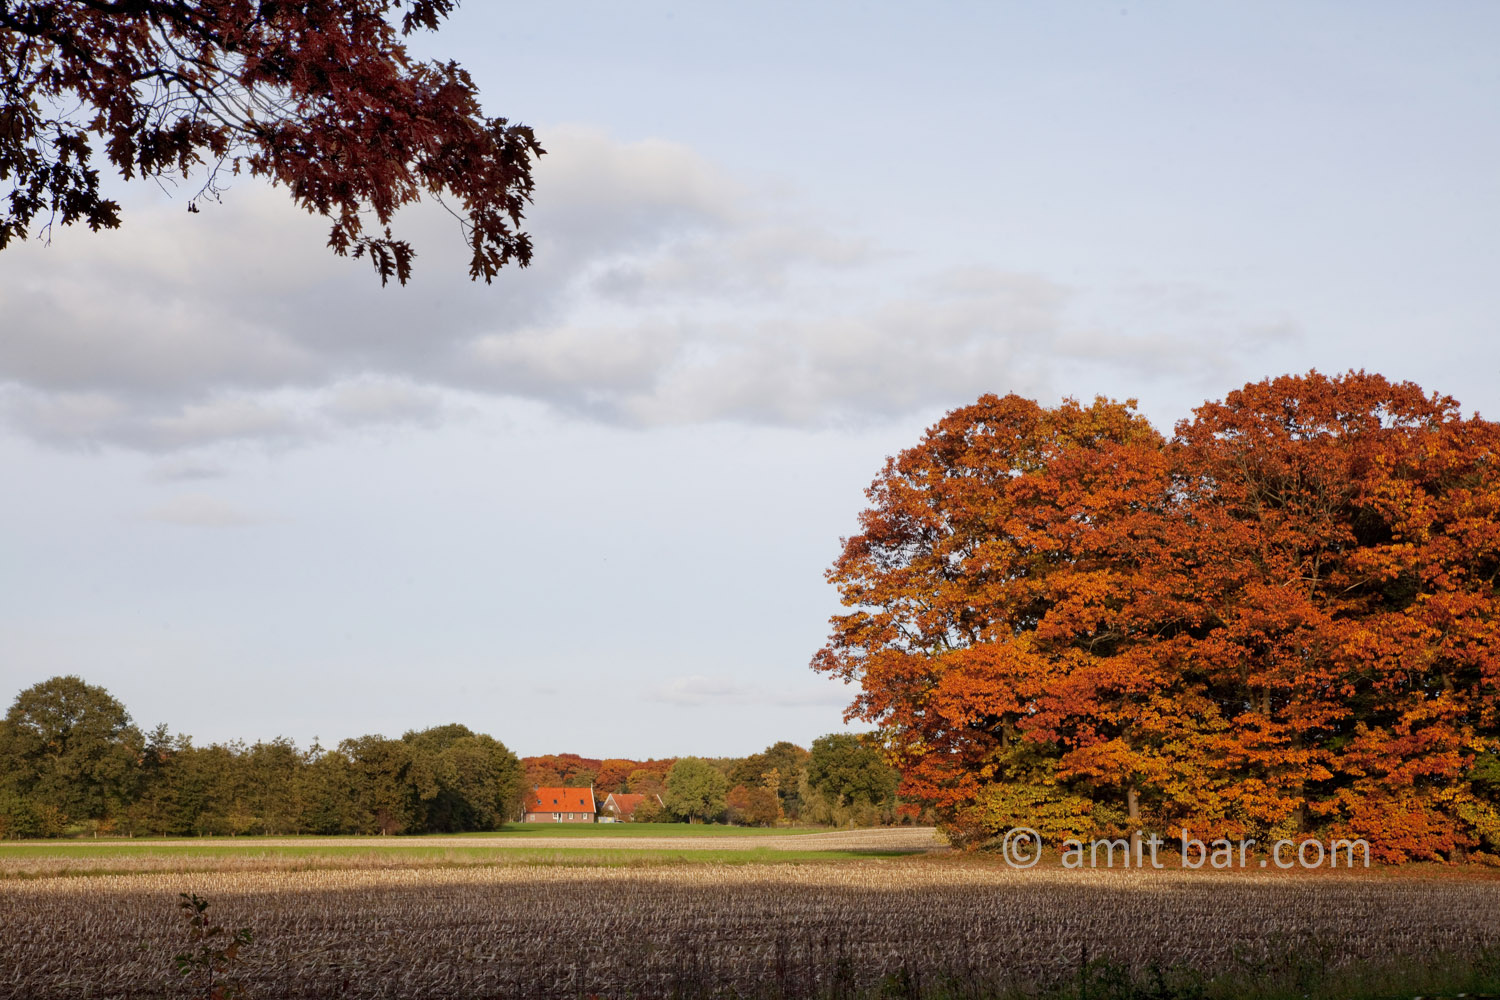 Autumn trees VI: Autumn in De Achterhoek, The Netherlands